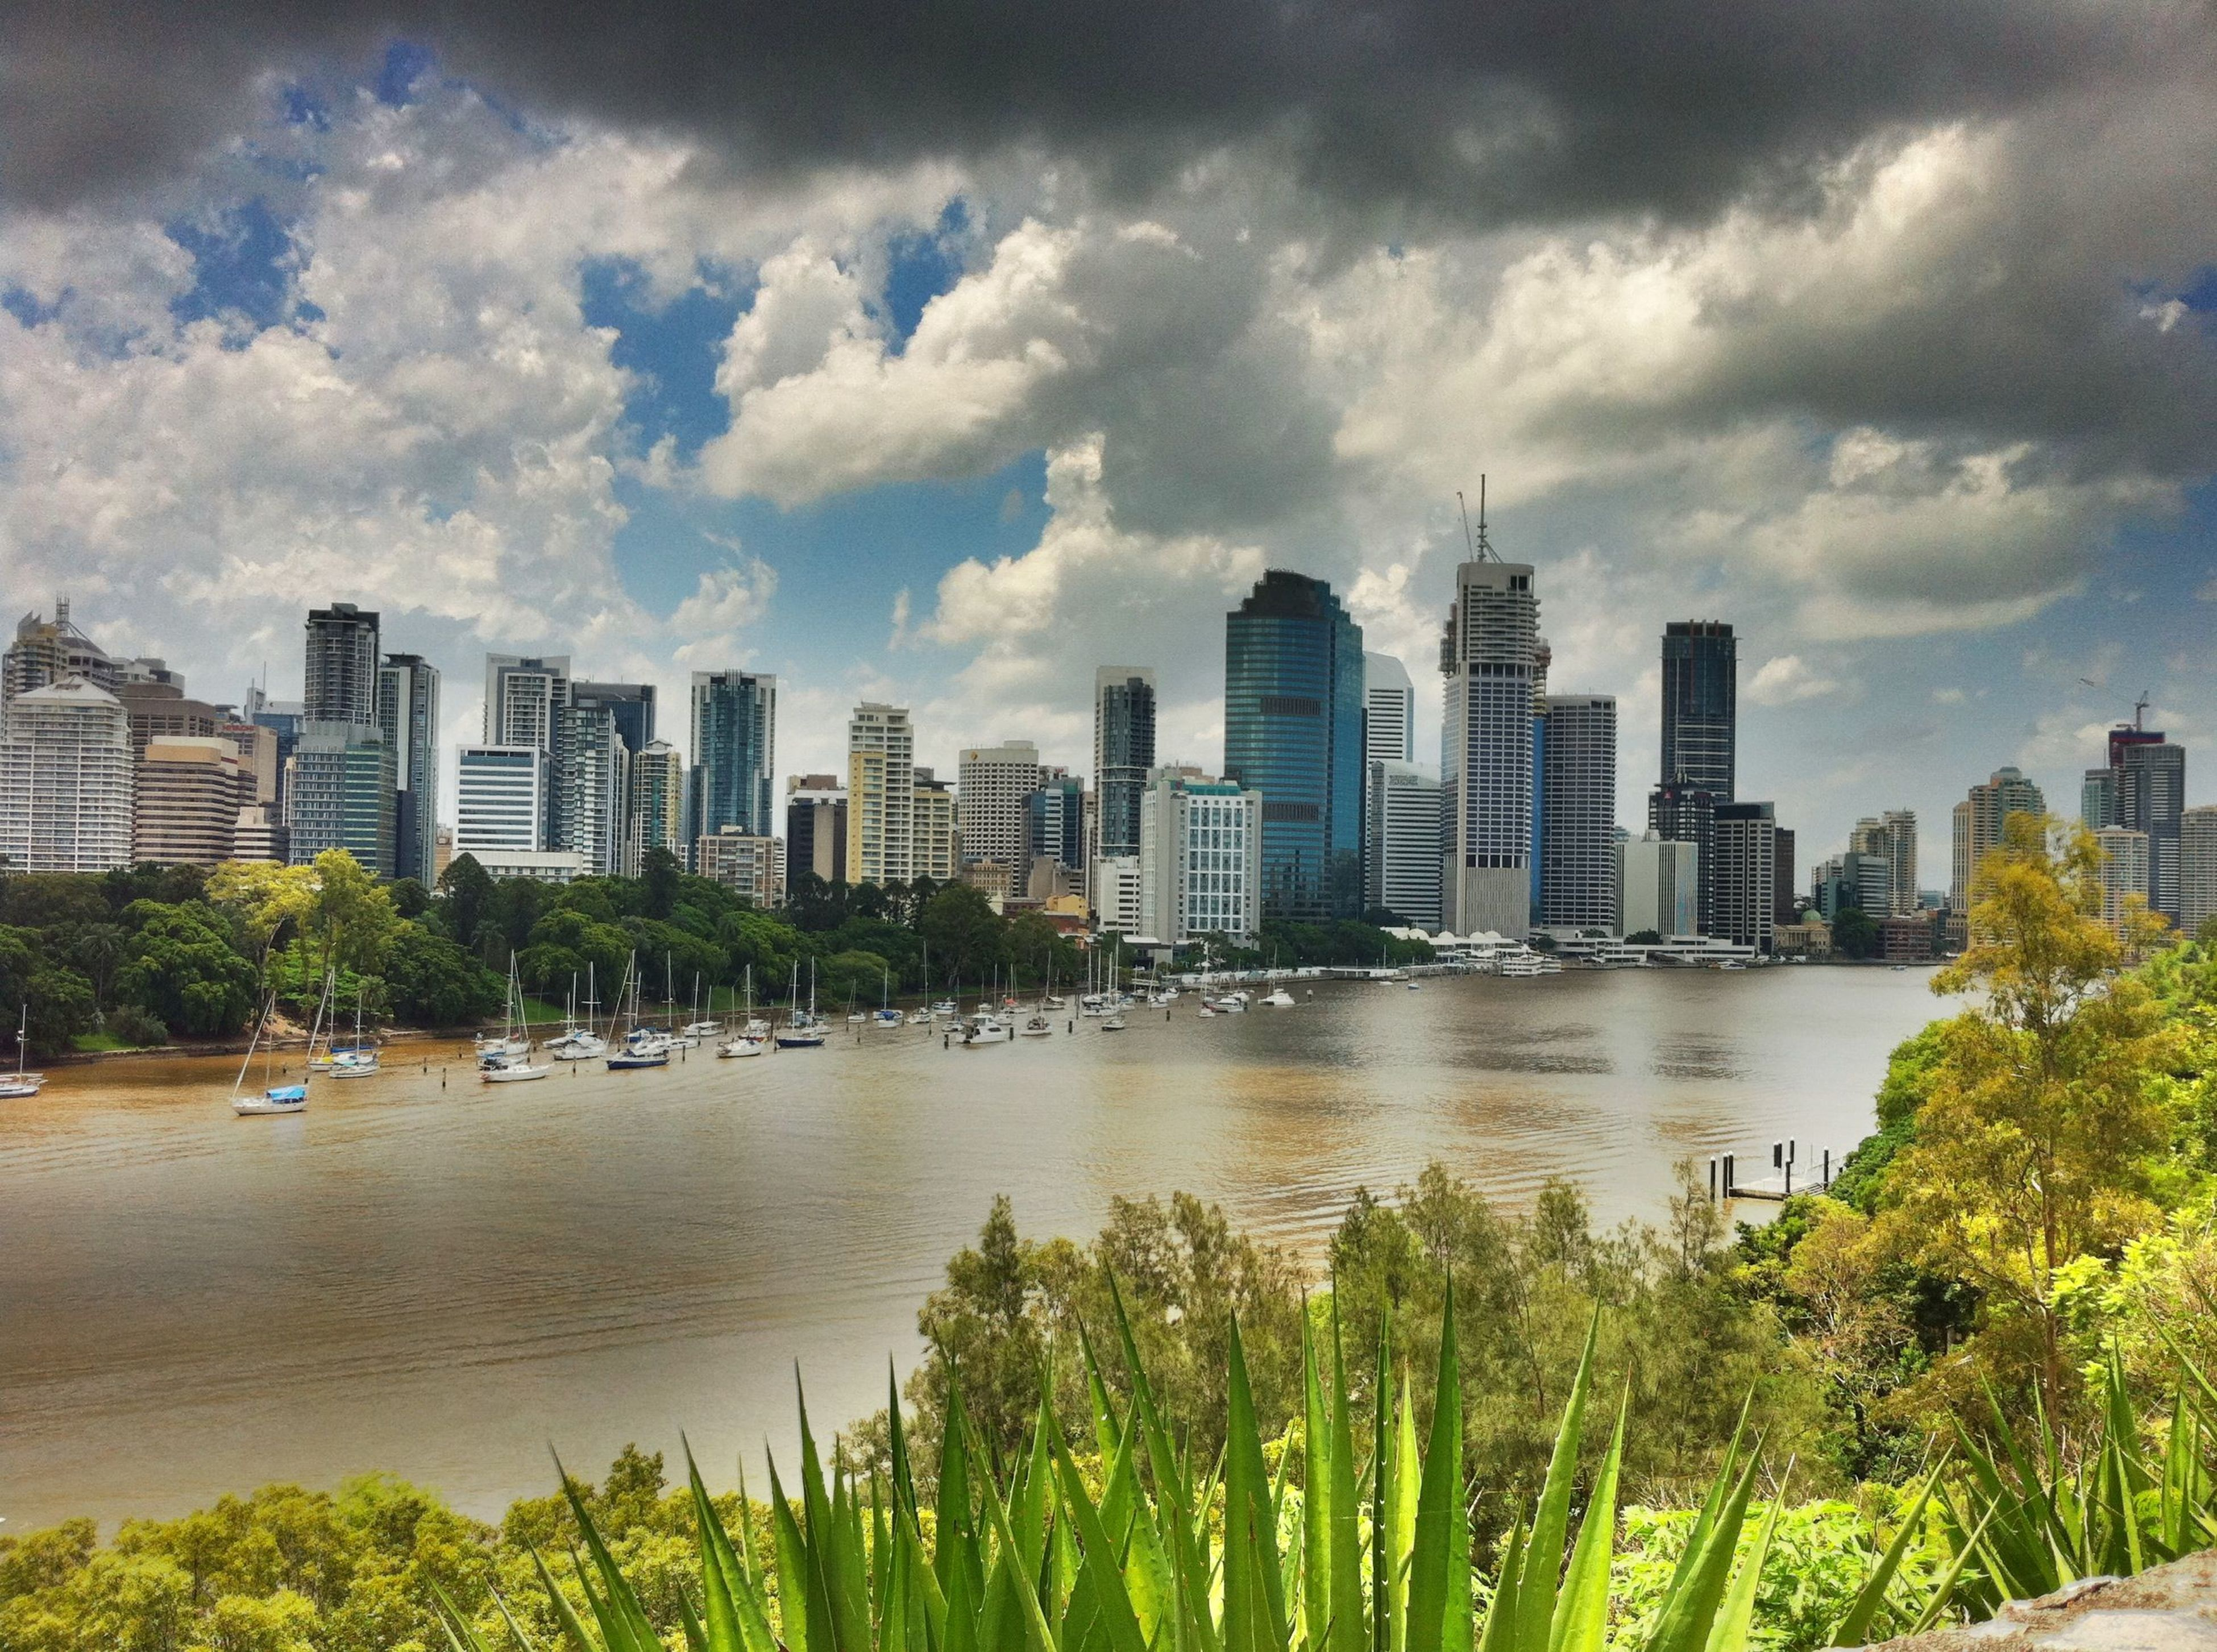 building exterior, architecture, built structure, city, sky, water, skyscraper, cityscape, cloud - sky, modern, river, tree, urban skyline, tall - high, cloudy, tower, growth, office building, cloud, city life